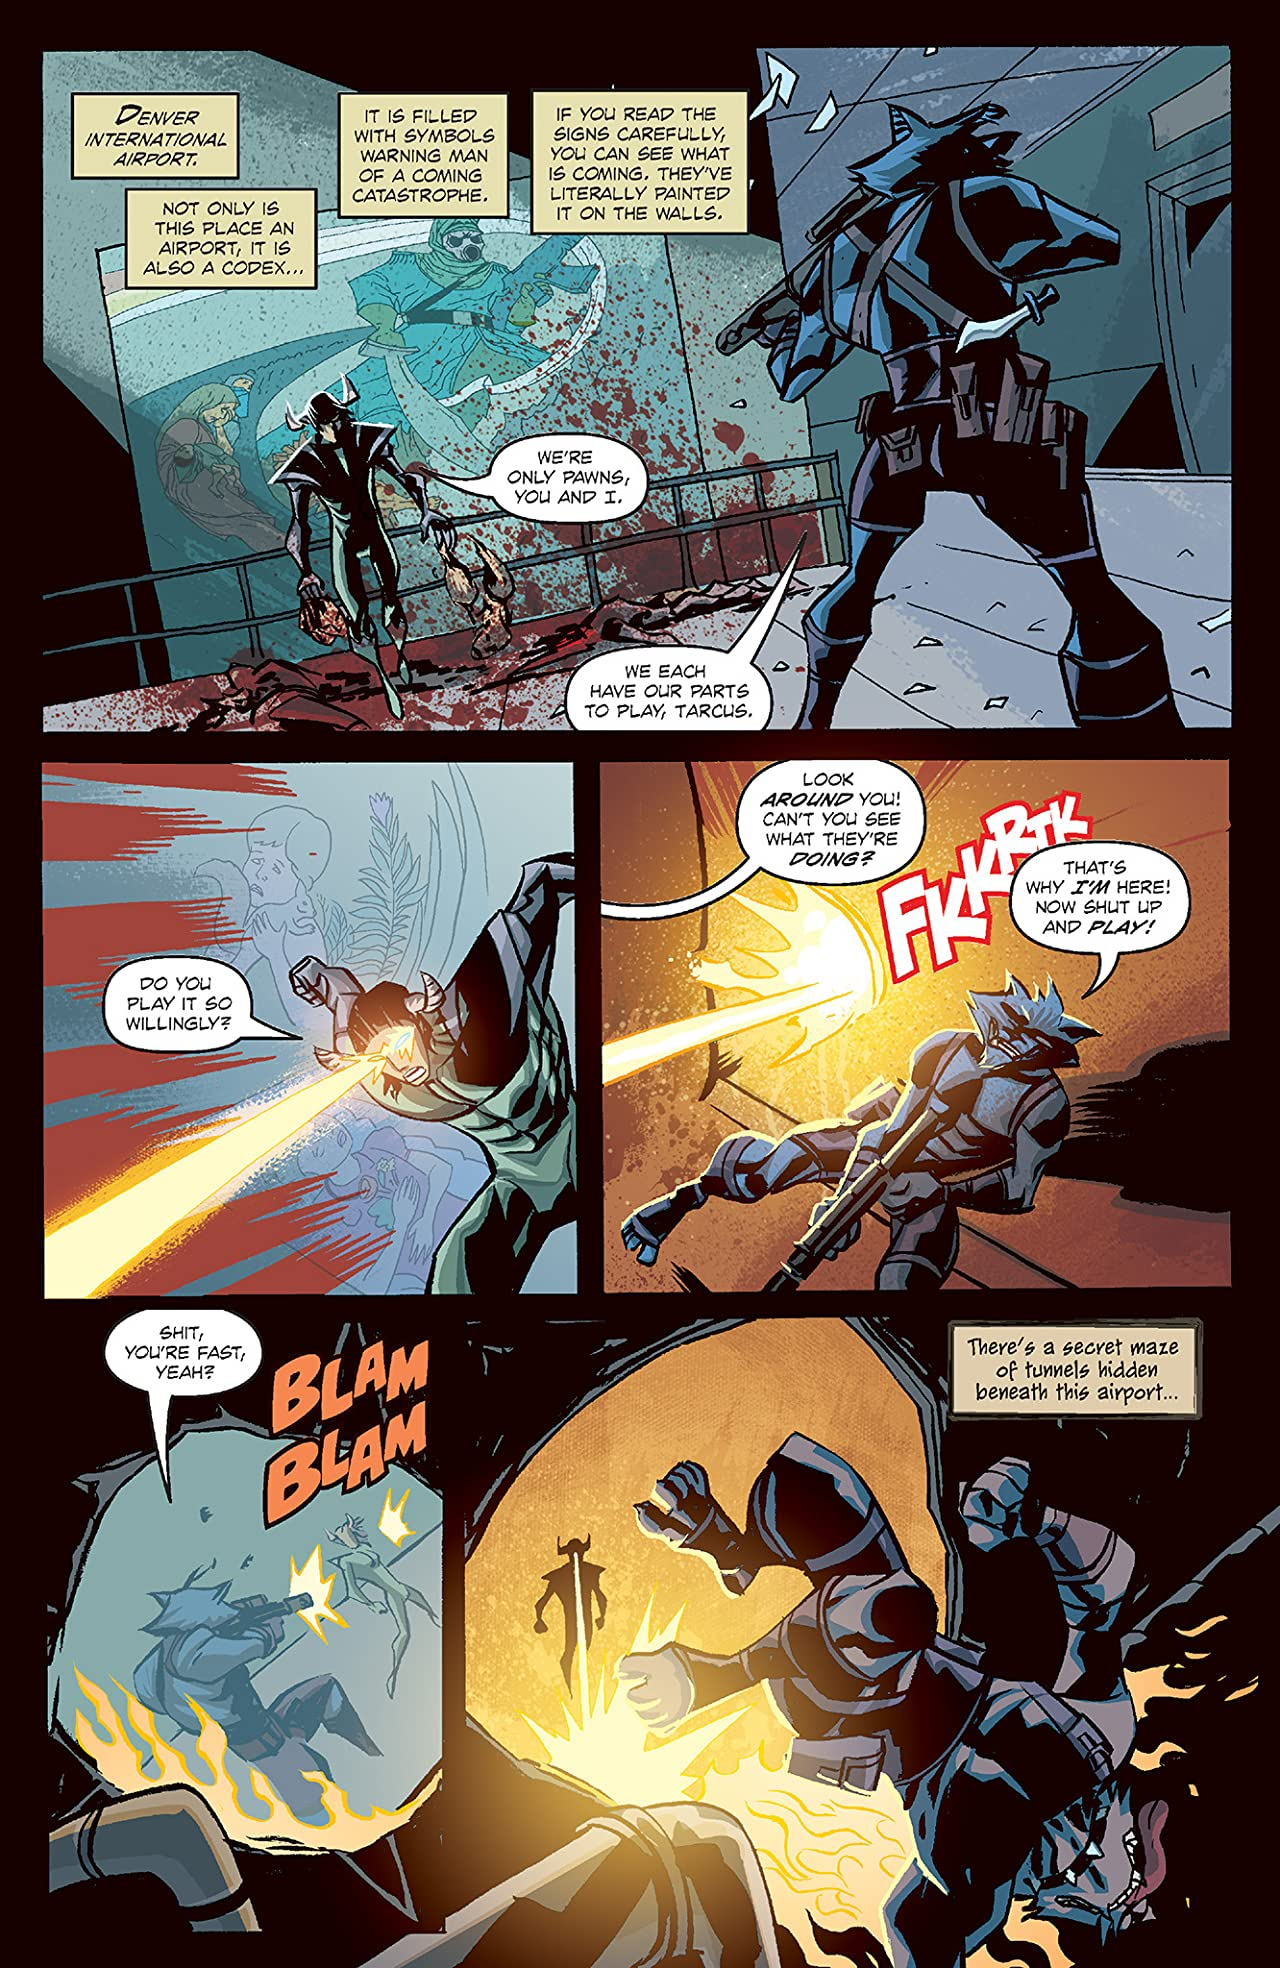 Michael Avon Oeming's The Victories: Transhuman #4